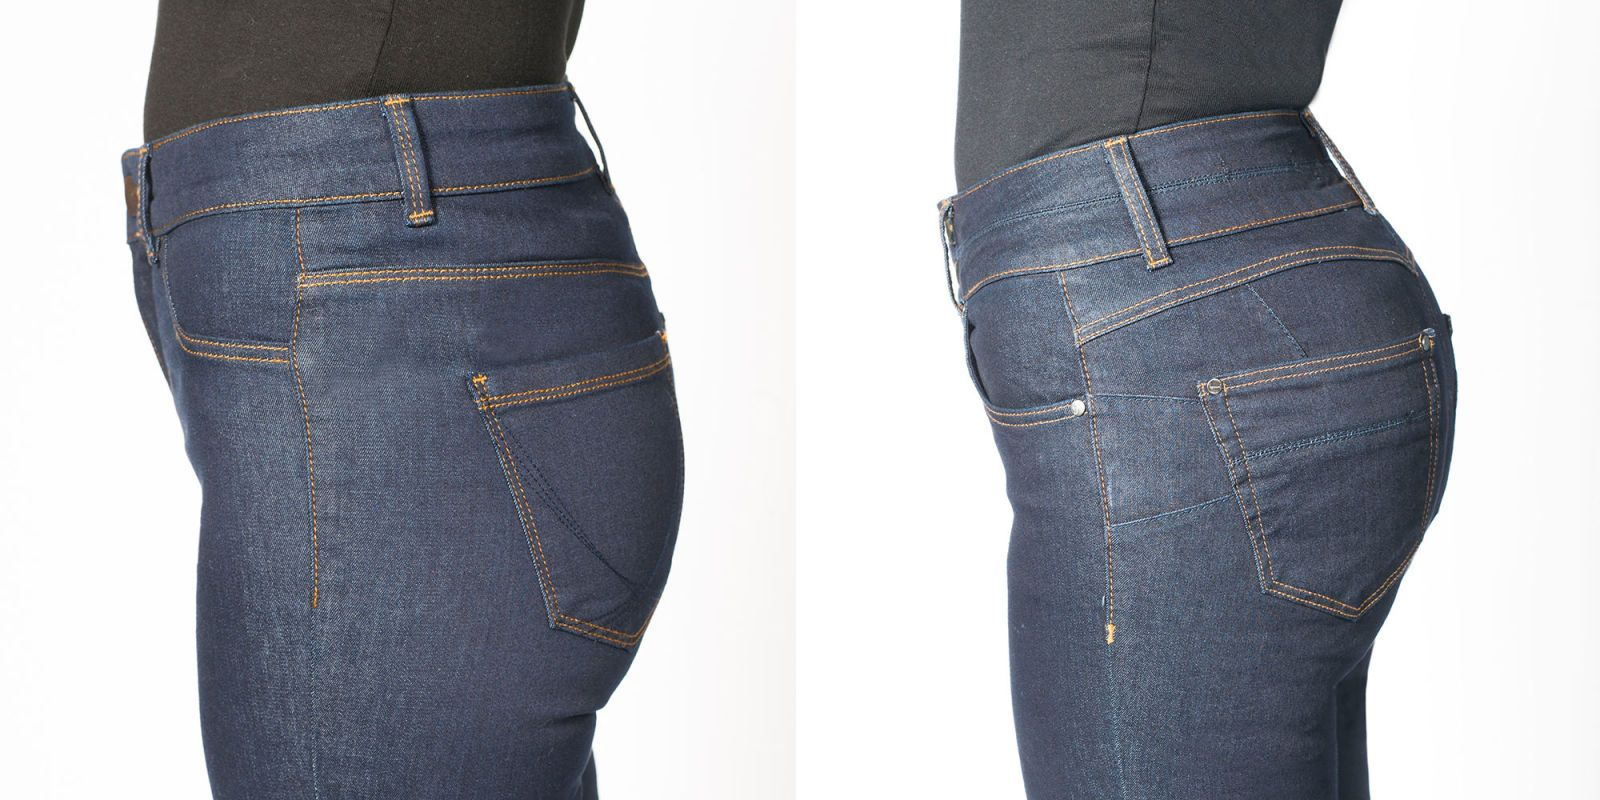 403f4a7ae7a Bum-enhancing jeans  the new BIG fashion trend